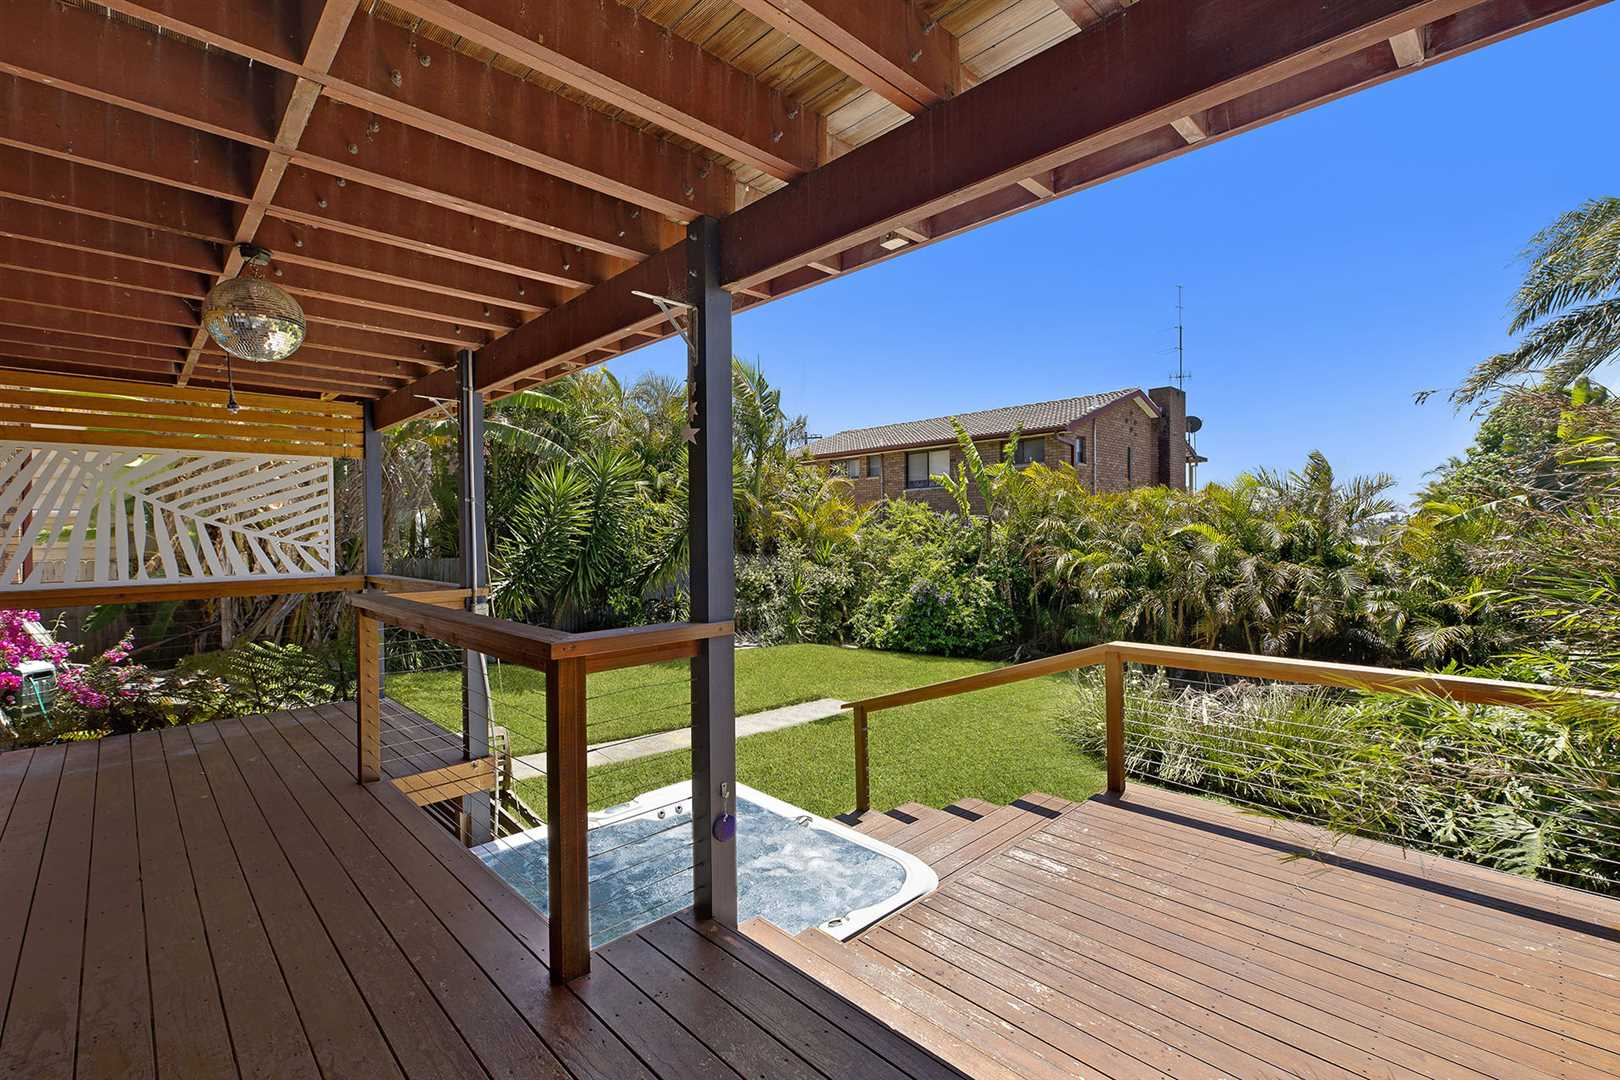 Covered Outdoor Entertaining & Spa